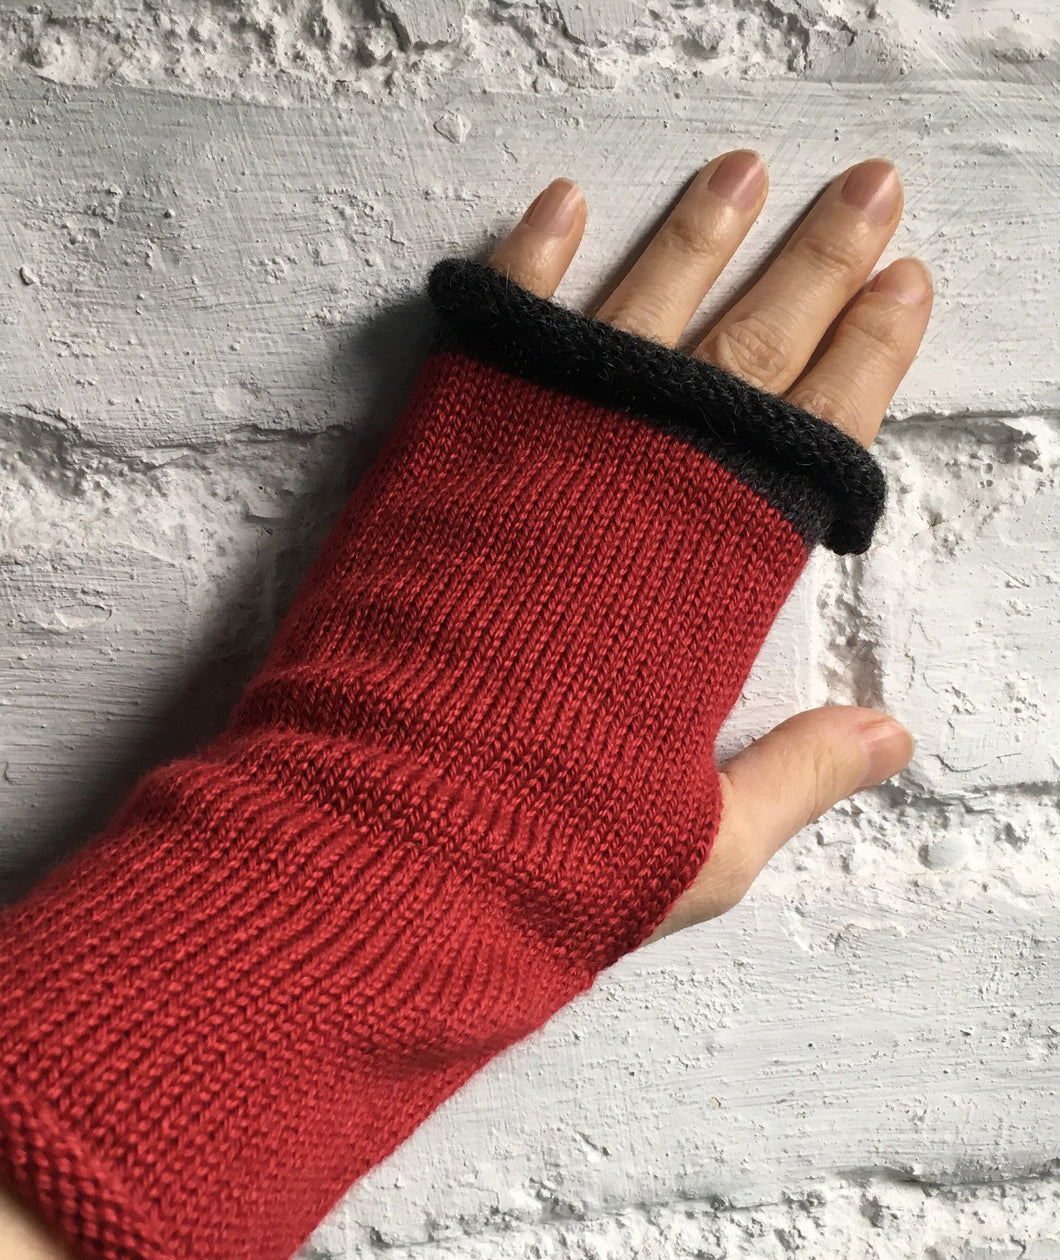 Lord and Taft Crimson Red Alpaca Silk Fingerless Gloves with Charcoal Grey Trim at Fingertips